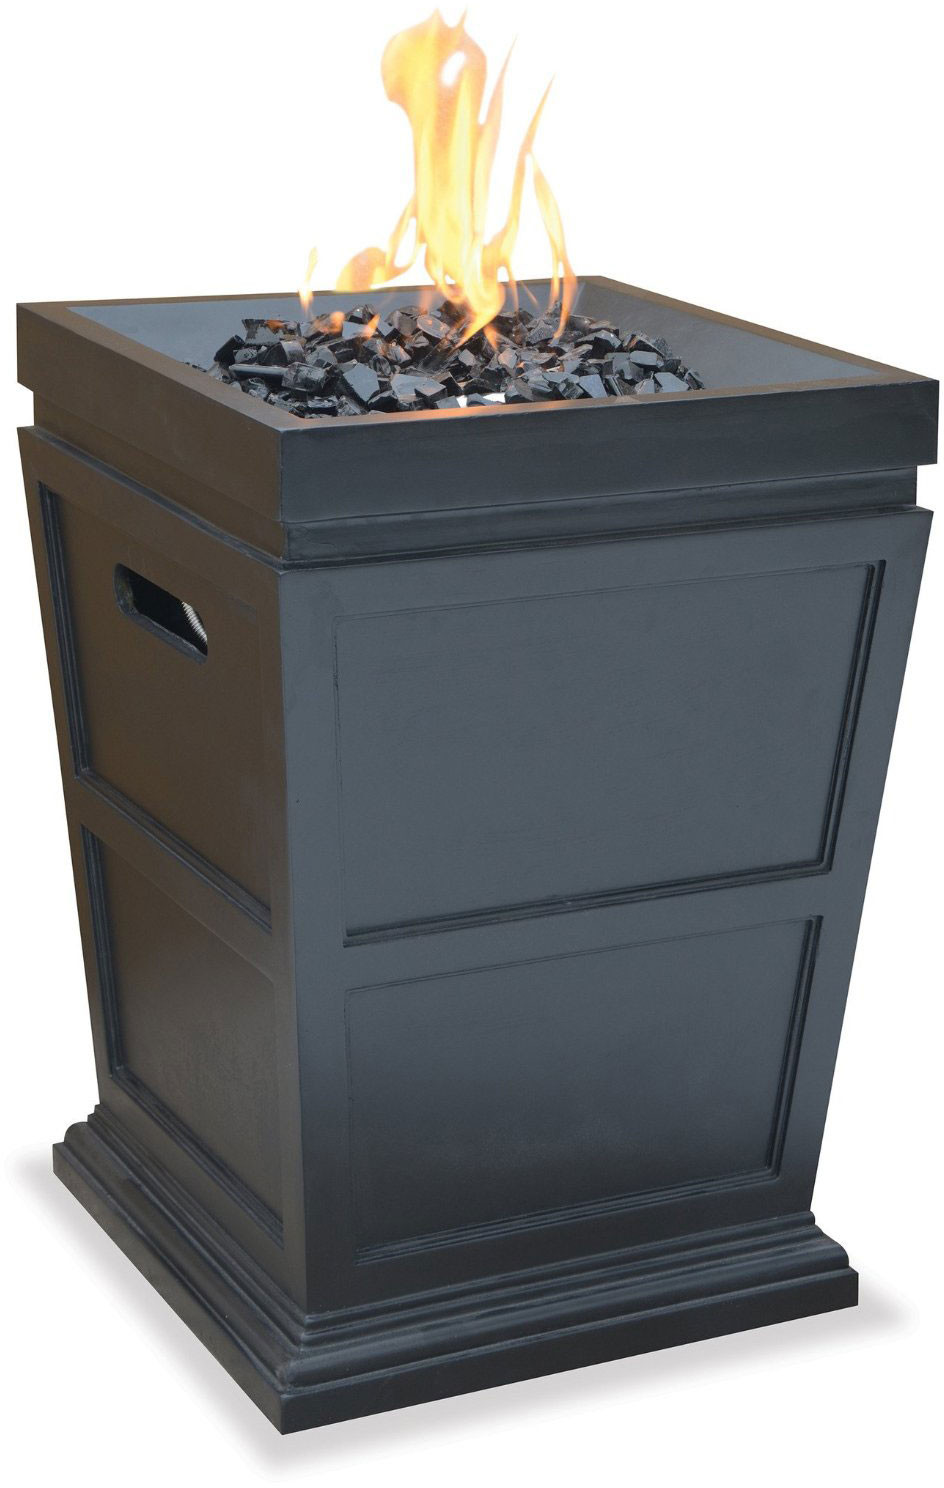 Decorative Outdoor Fireplaces : Blue rhino gad sp outdoor lp gas fireplace with